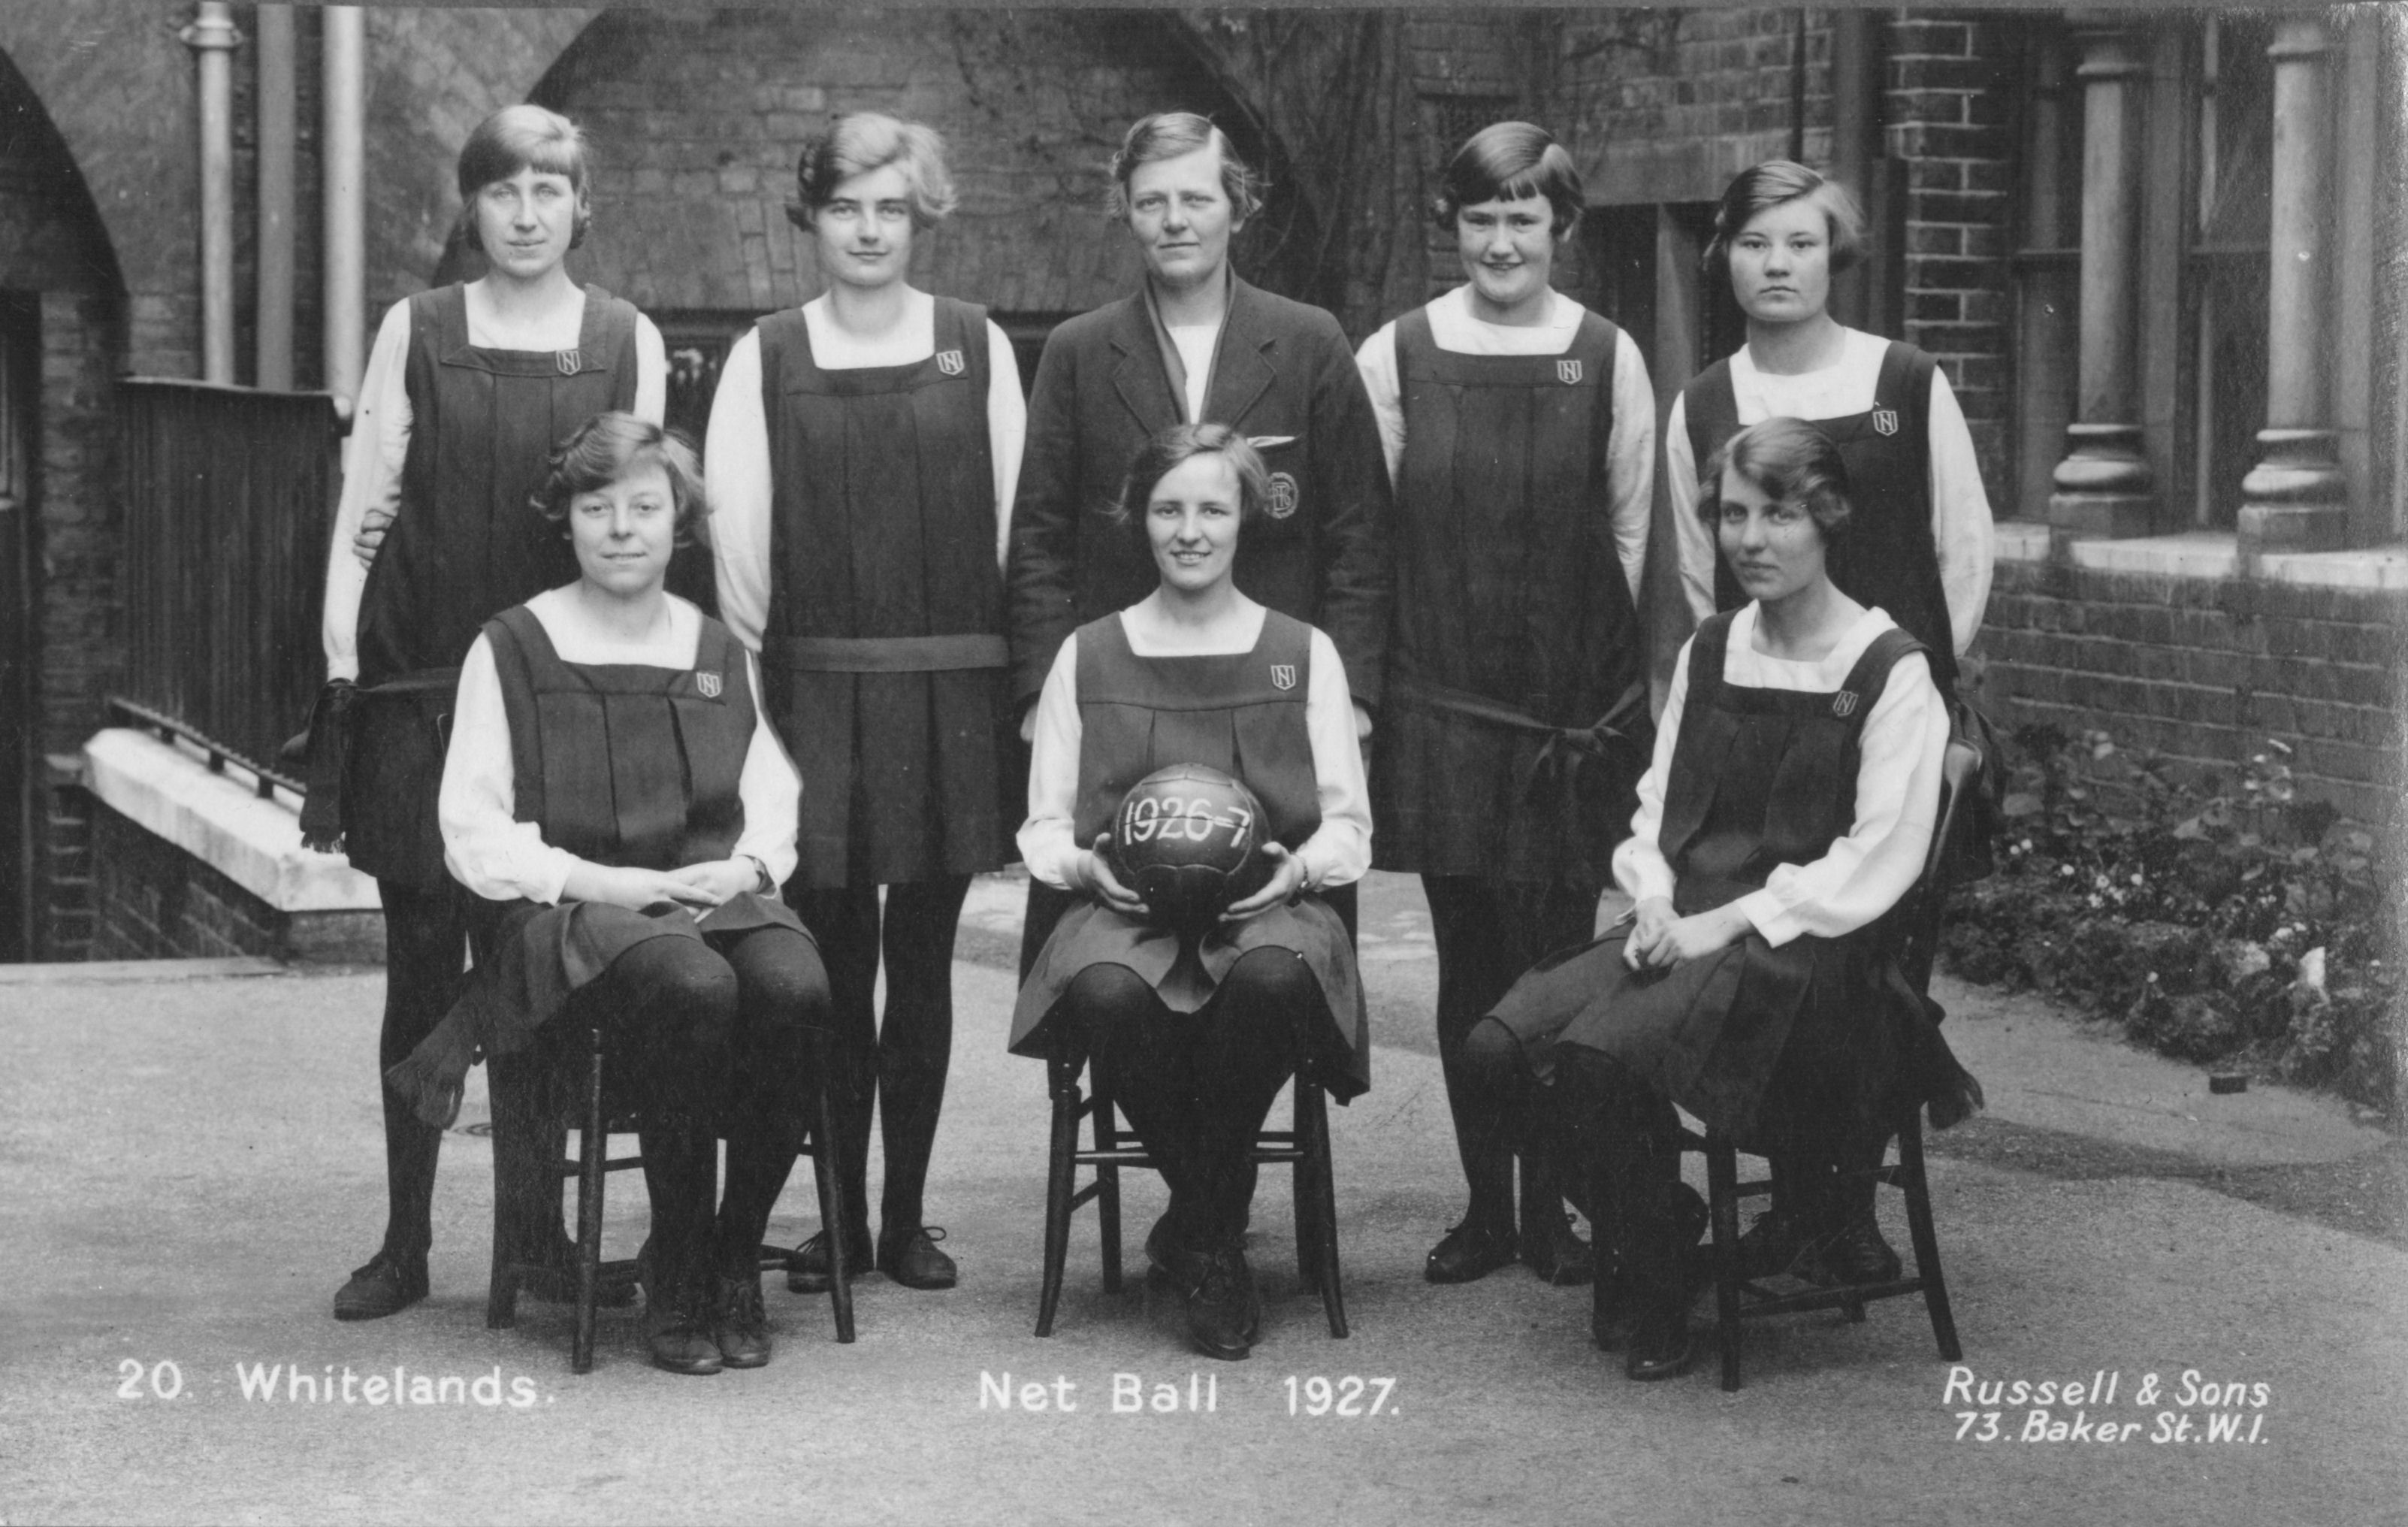 Photograph from Whitelands Archive: Net ball 1927; a team of 8, posing with a ball.